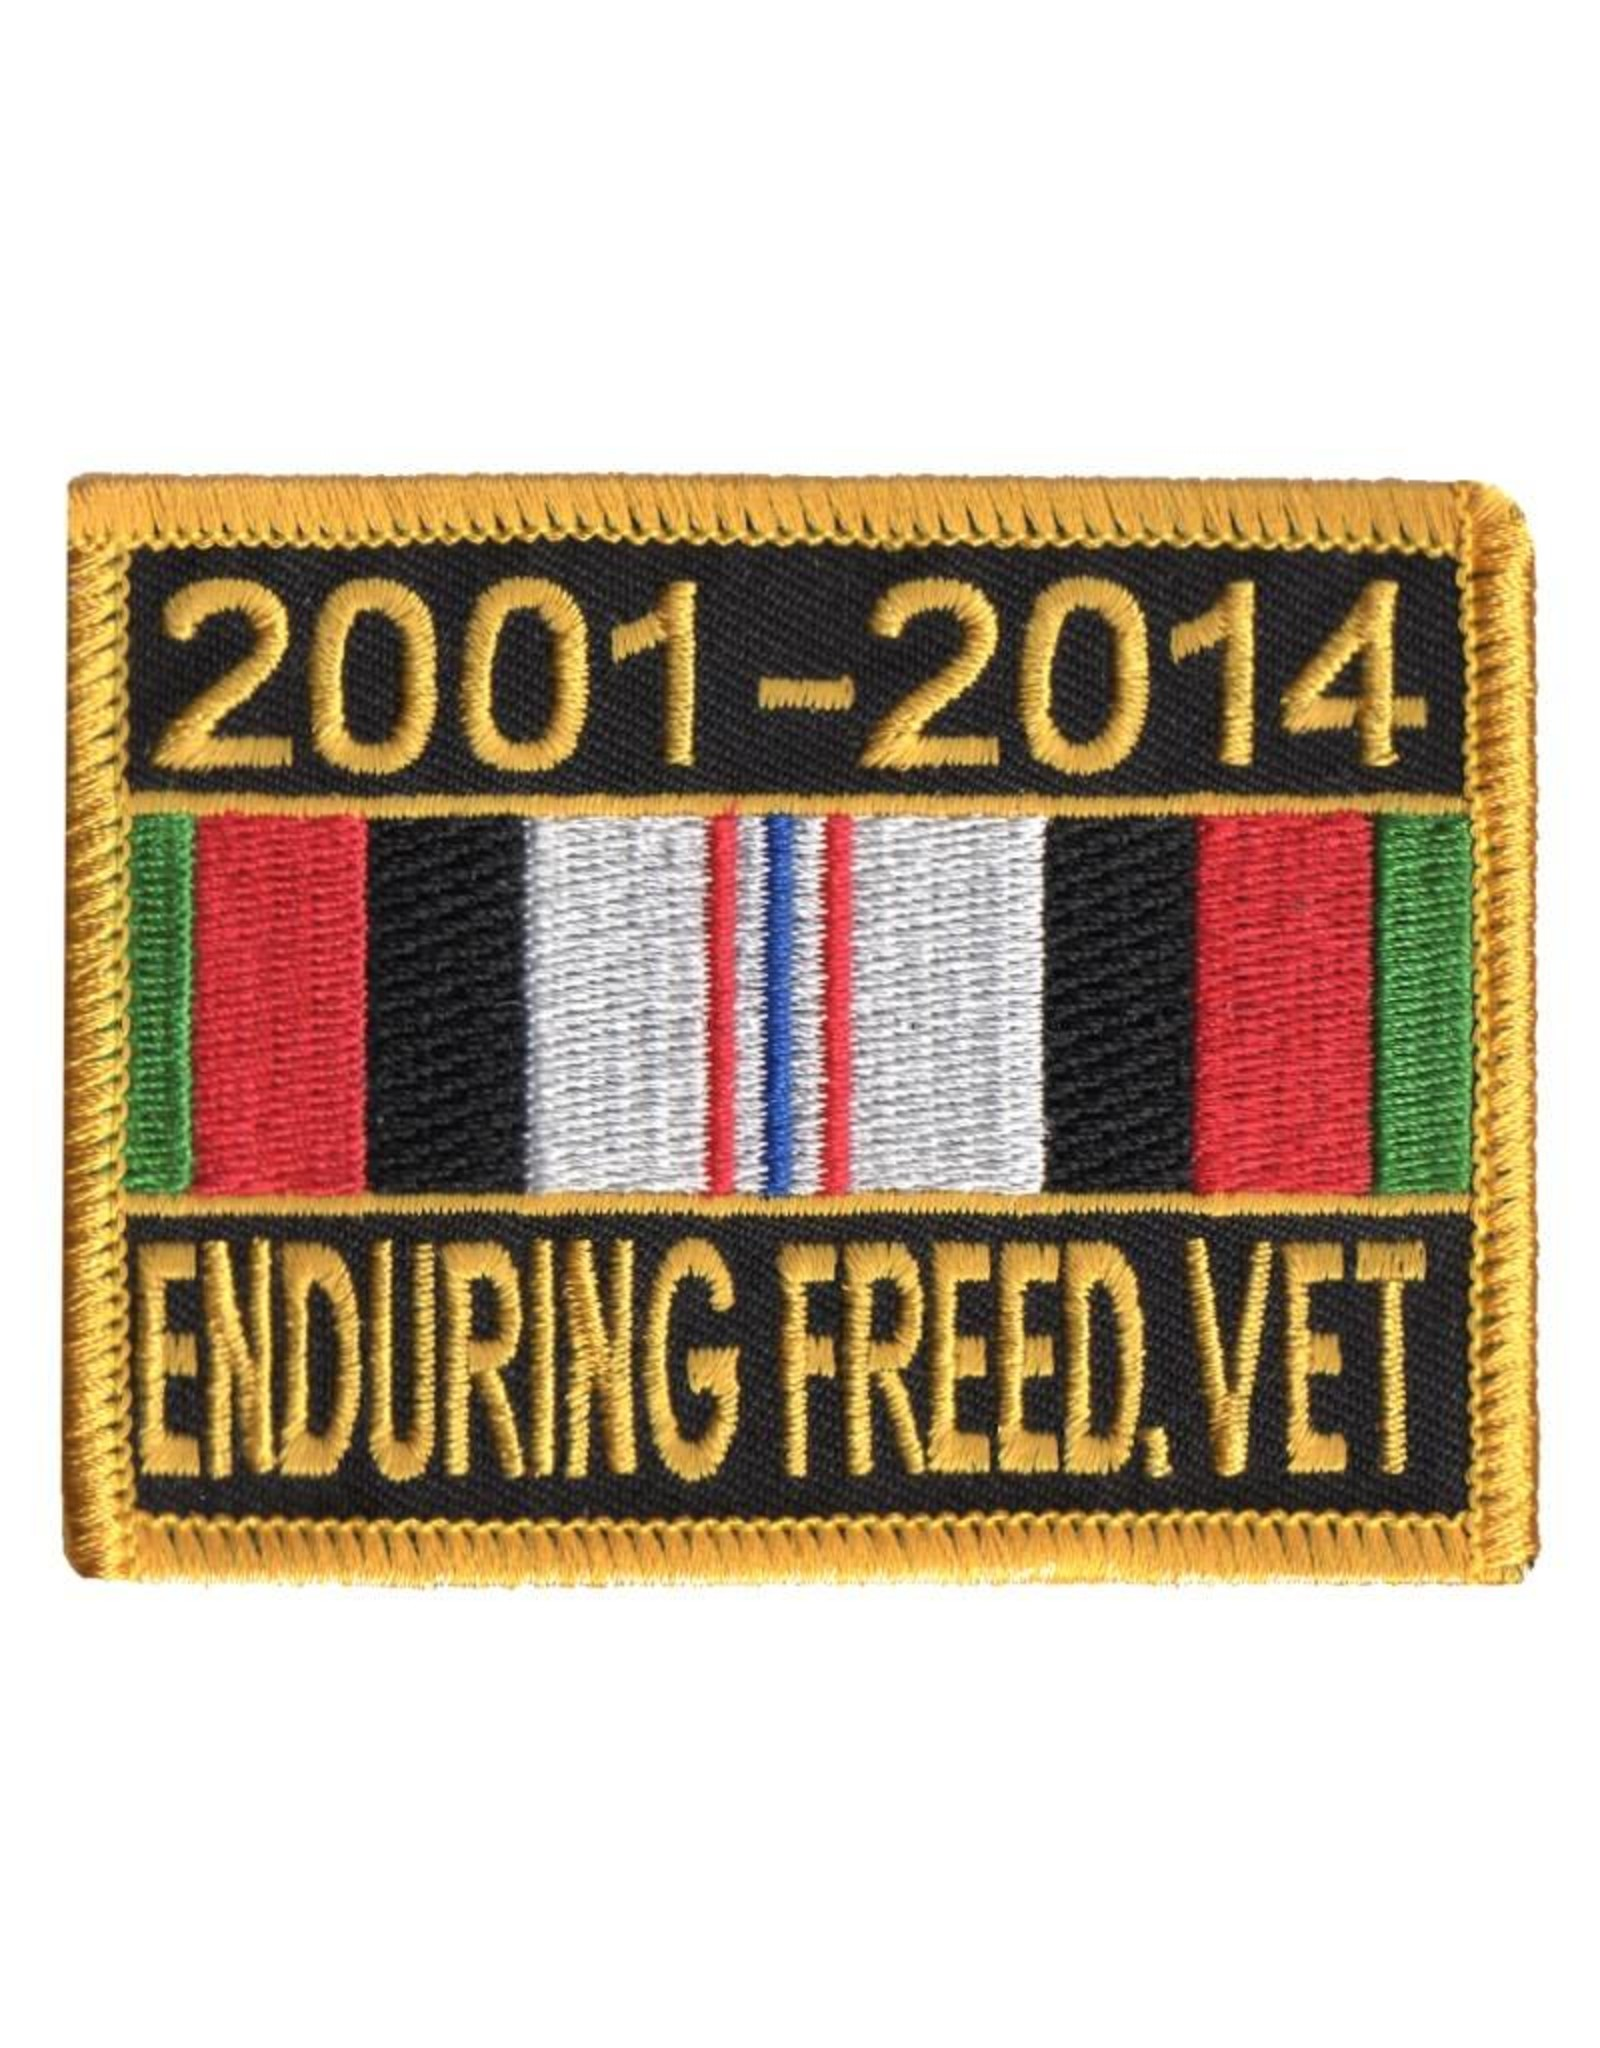 "MidMil Embroidered 2001-2014 Enduring Freedom Veteran Patch with Ribbon  2.65"" high x 3.5"" wide"